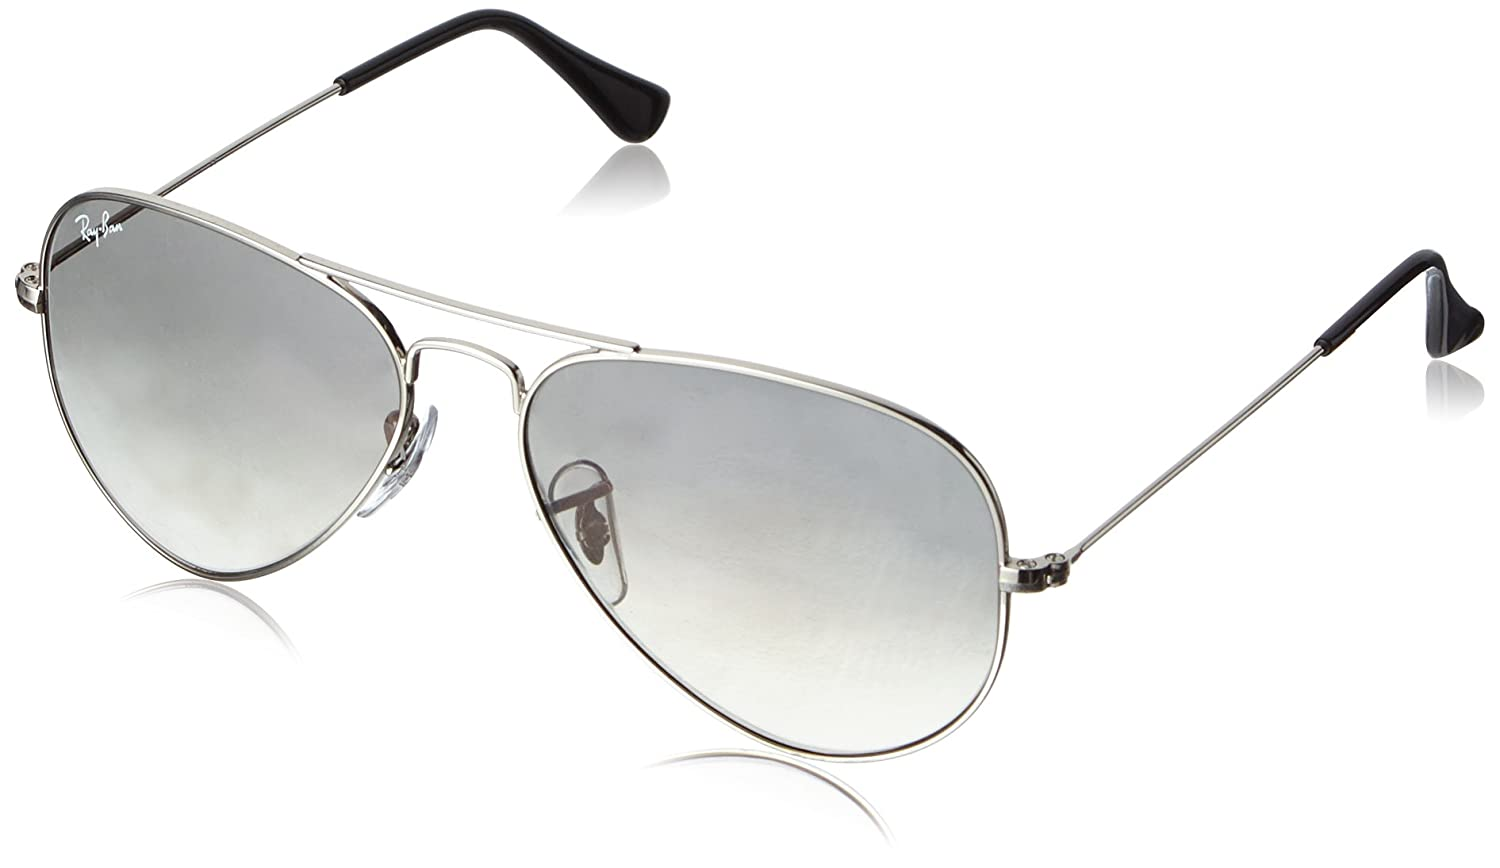 007c864b36 Ray-Ban Unisex RB3025 Aviator Polarized Sunglasses 62mm  Amazon.co.uk   Clothing